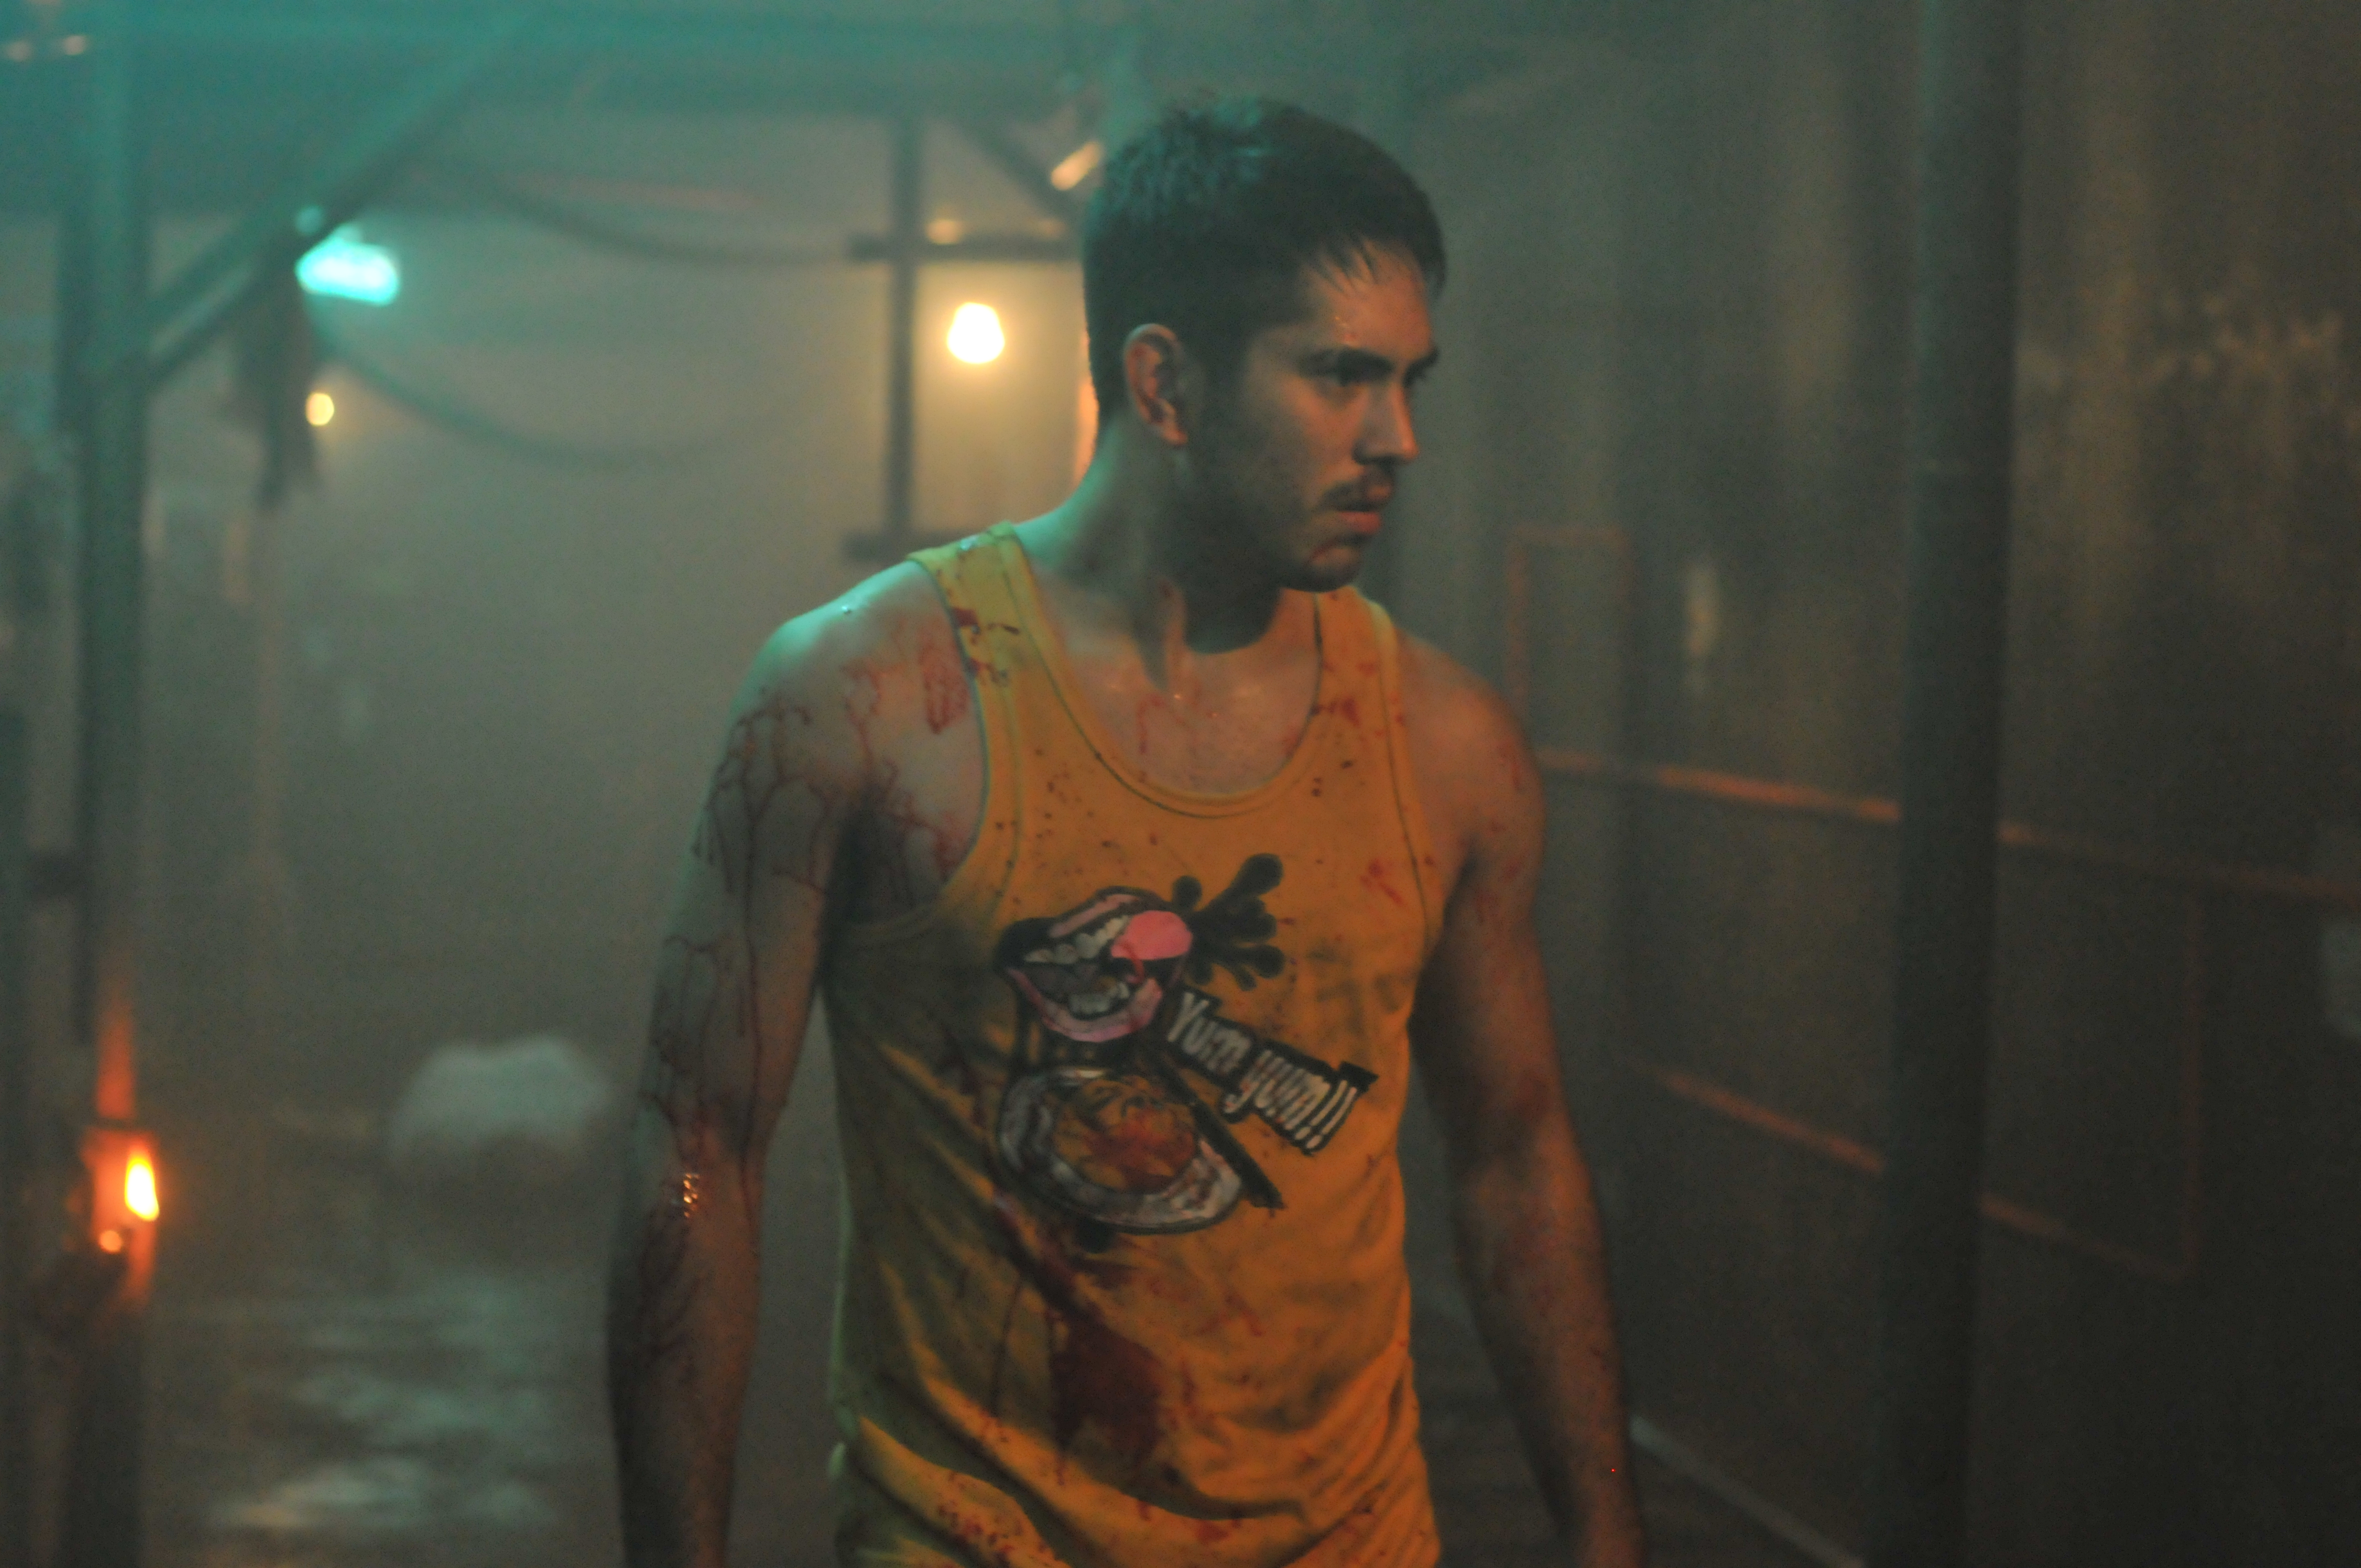 Gerald Anderson as Daniel. Photo courtesy of Reality Entertainment